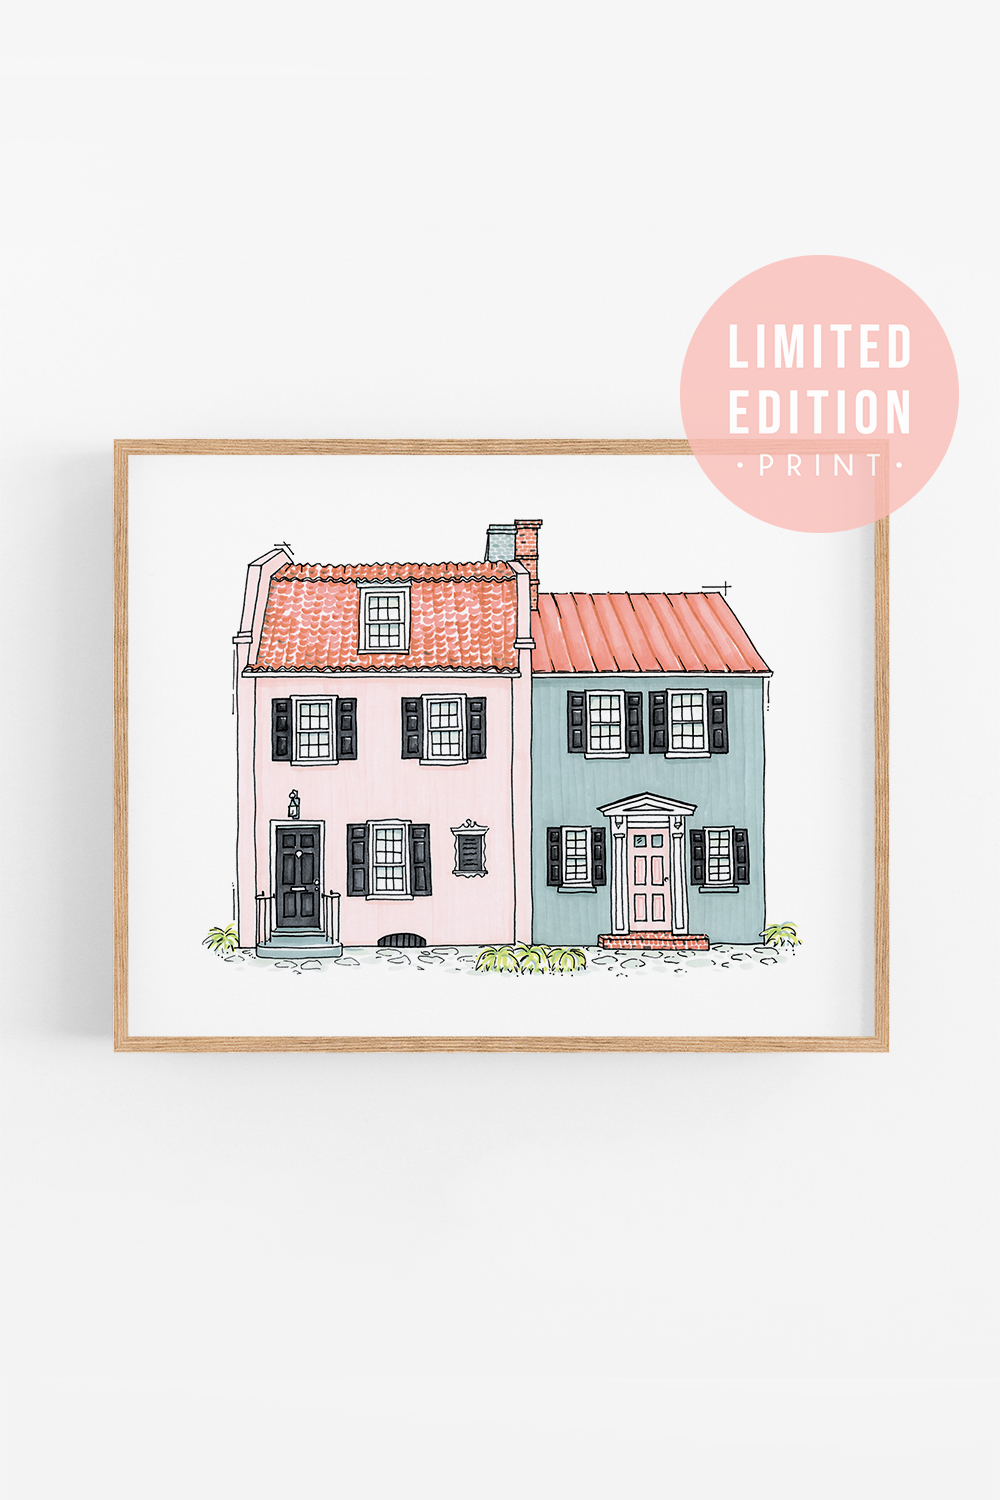 Architectural Art Print: Pink & Blue House [LIMITED EDITION]; Charleston Artwork; Girls room artwork; Whimsical Illustration